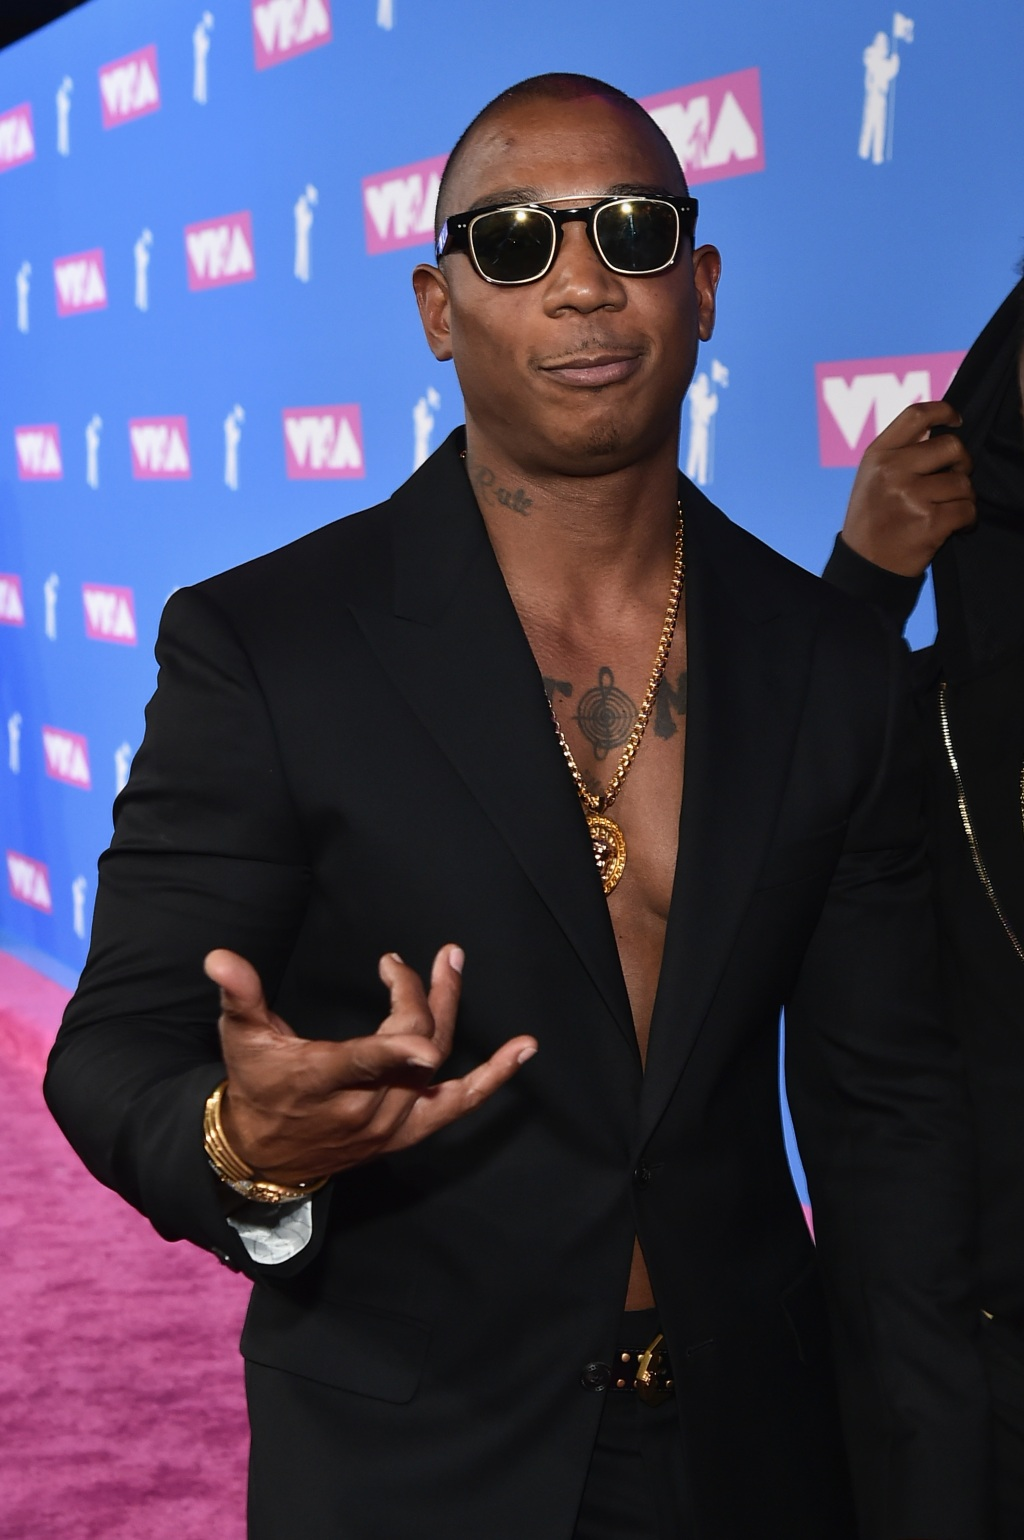 Ja Rule attends the 2018 MTV Video Music Awards at Radio City Music Hall on August 20, 2018 in New York City. (Photo by Mike Coppola/Getty Images for MTV)